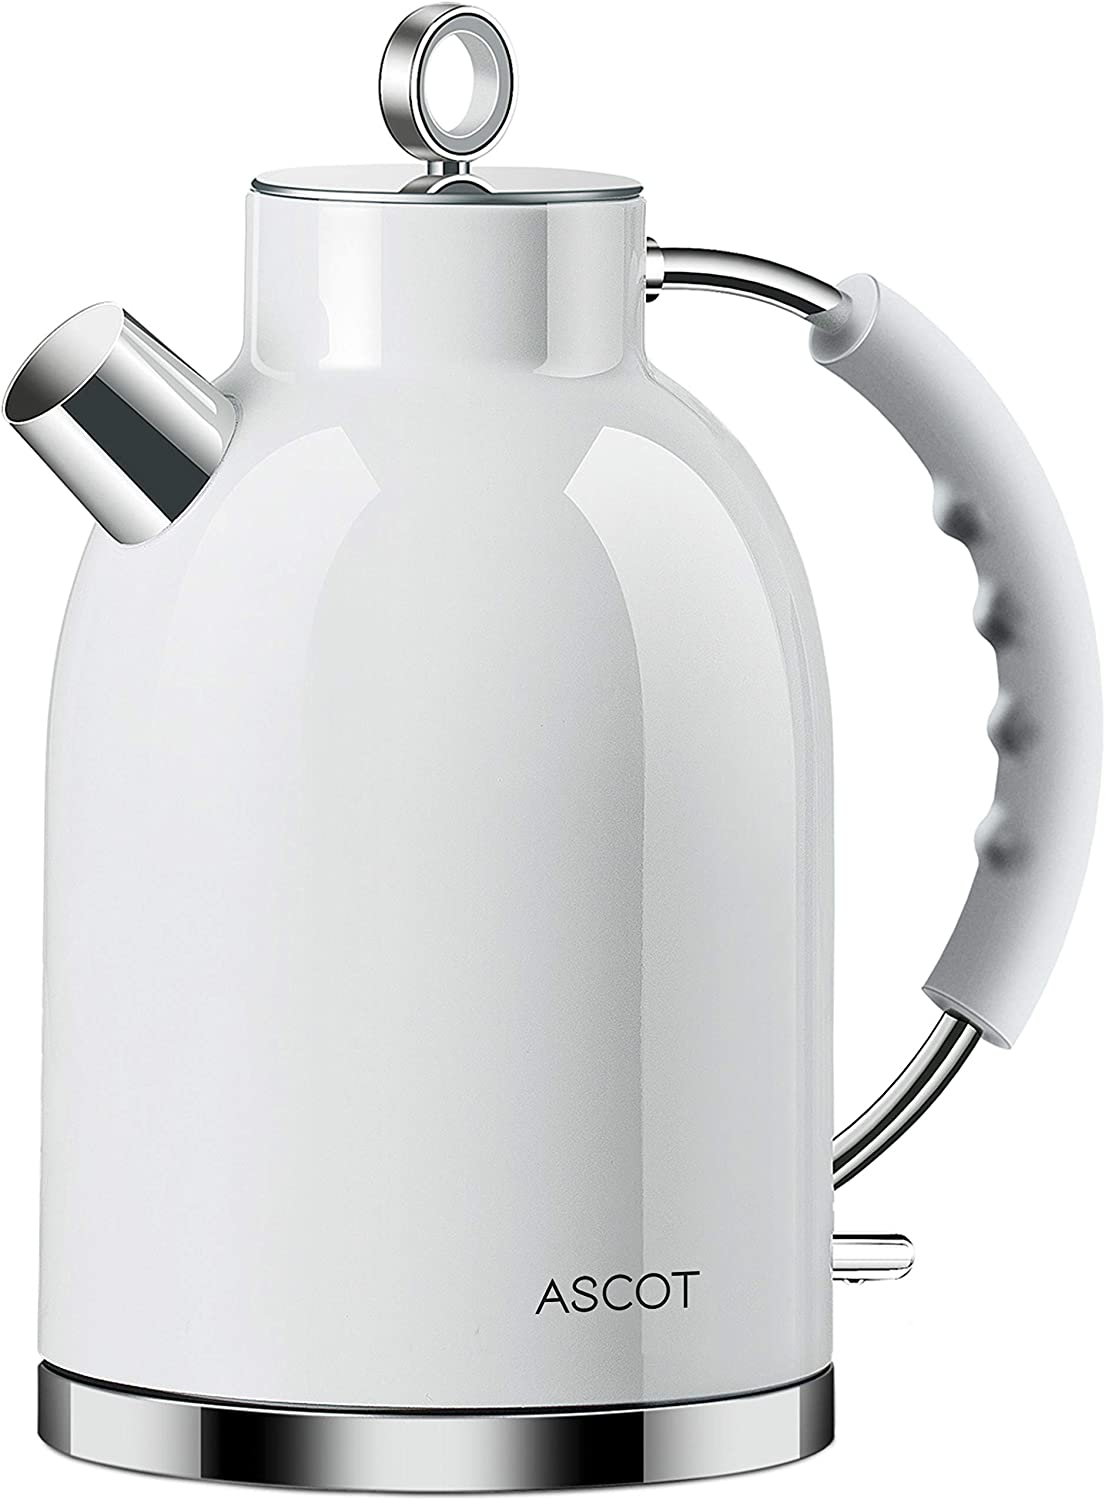 Electric Kettle, ASCOT Stainless Steel Electric Tea Kettle, 1.7QT, 1500W, BPA-Free, Cordless, Automatic Shut-off, Fast Boiling Water Heater - White: Kitchen & Dining